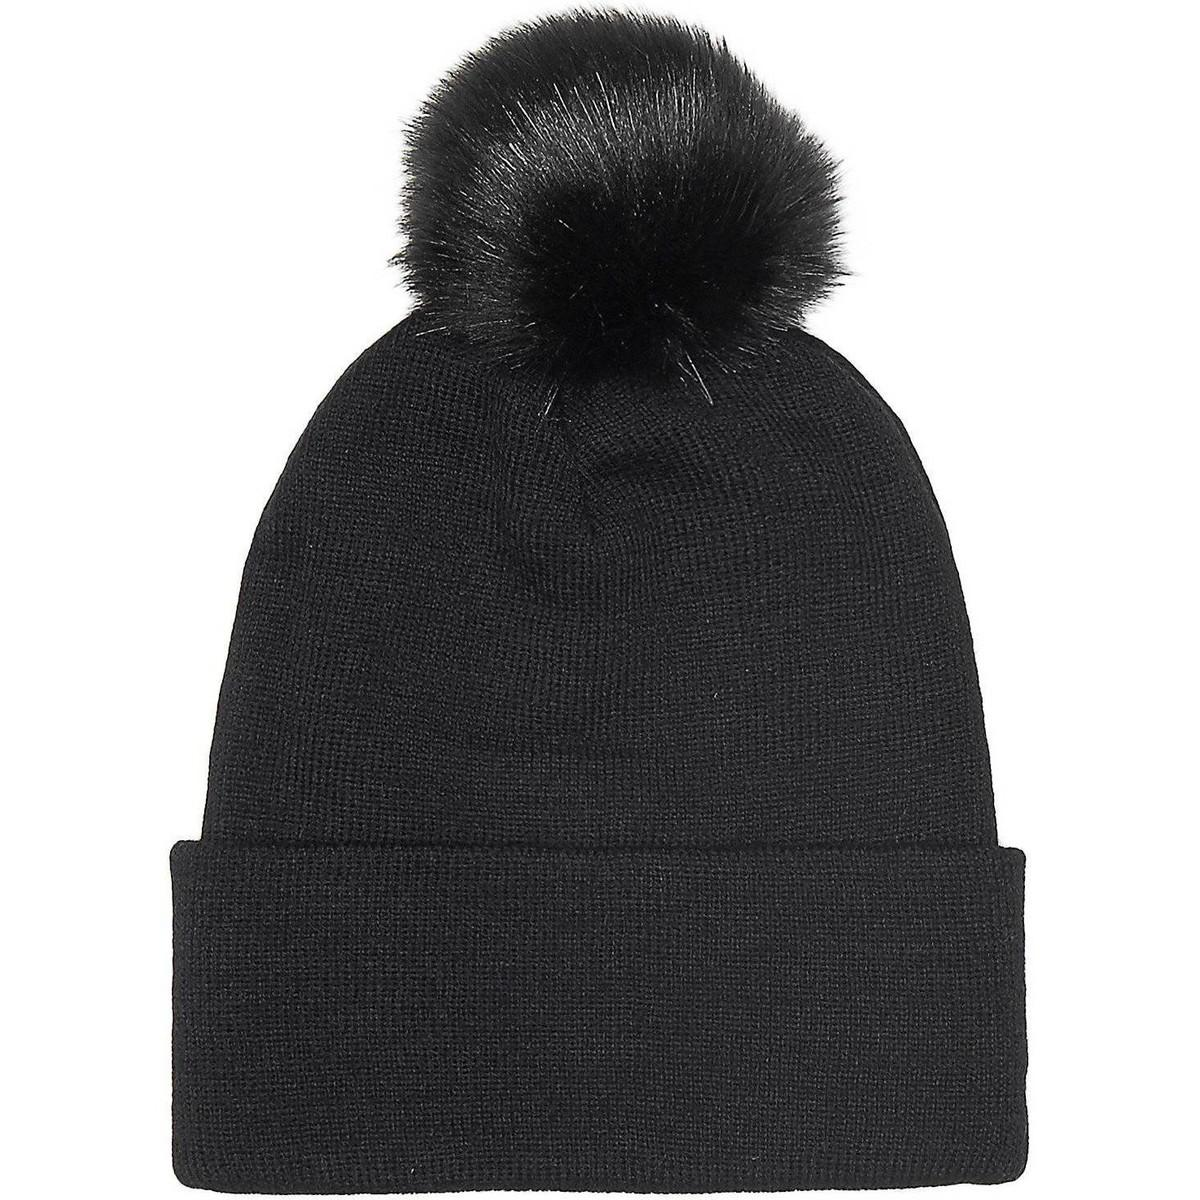 Guess Aw6452 Wol01 Hat Accessories Black Men s Beanie In Black in ... a887c5d75e6